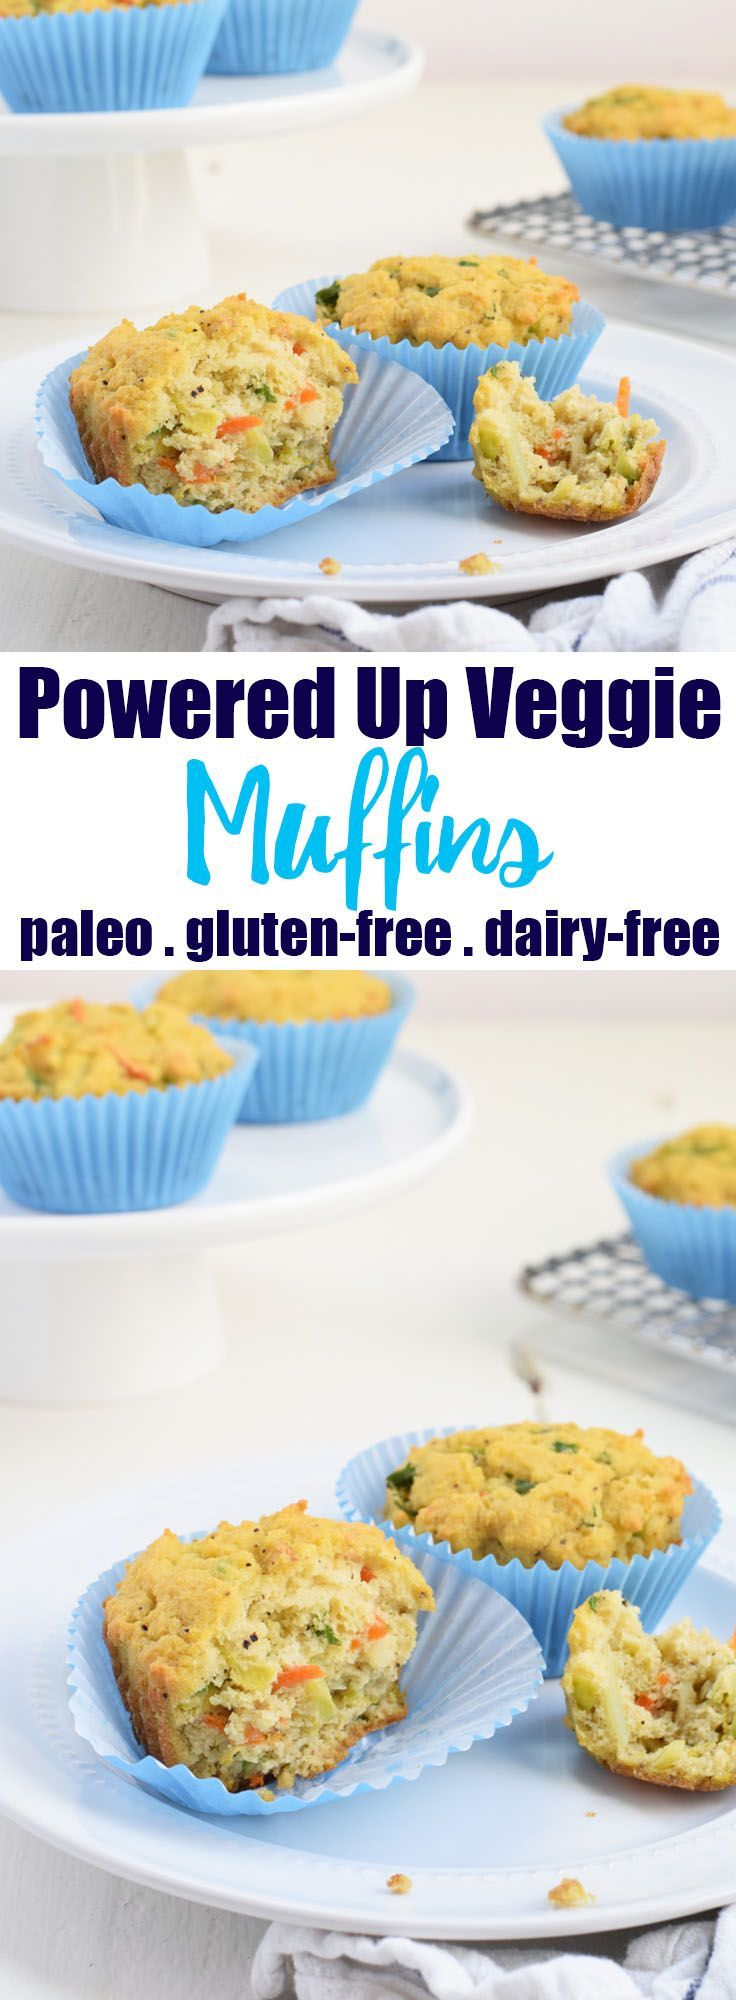 Powered Up Veggie Muffins from Living Loving Paleo! | paleo, gluten-free & dairy-free | The most delicious, savory & veggie-filled muffins! Perfect for breakfast, lunch, or a side dish for dinner!